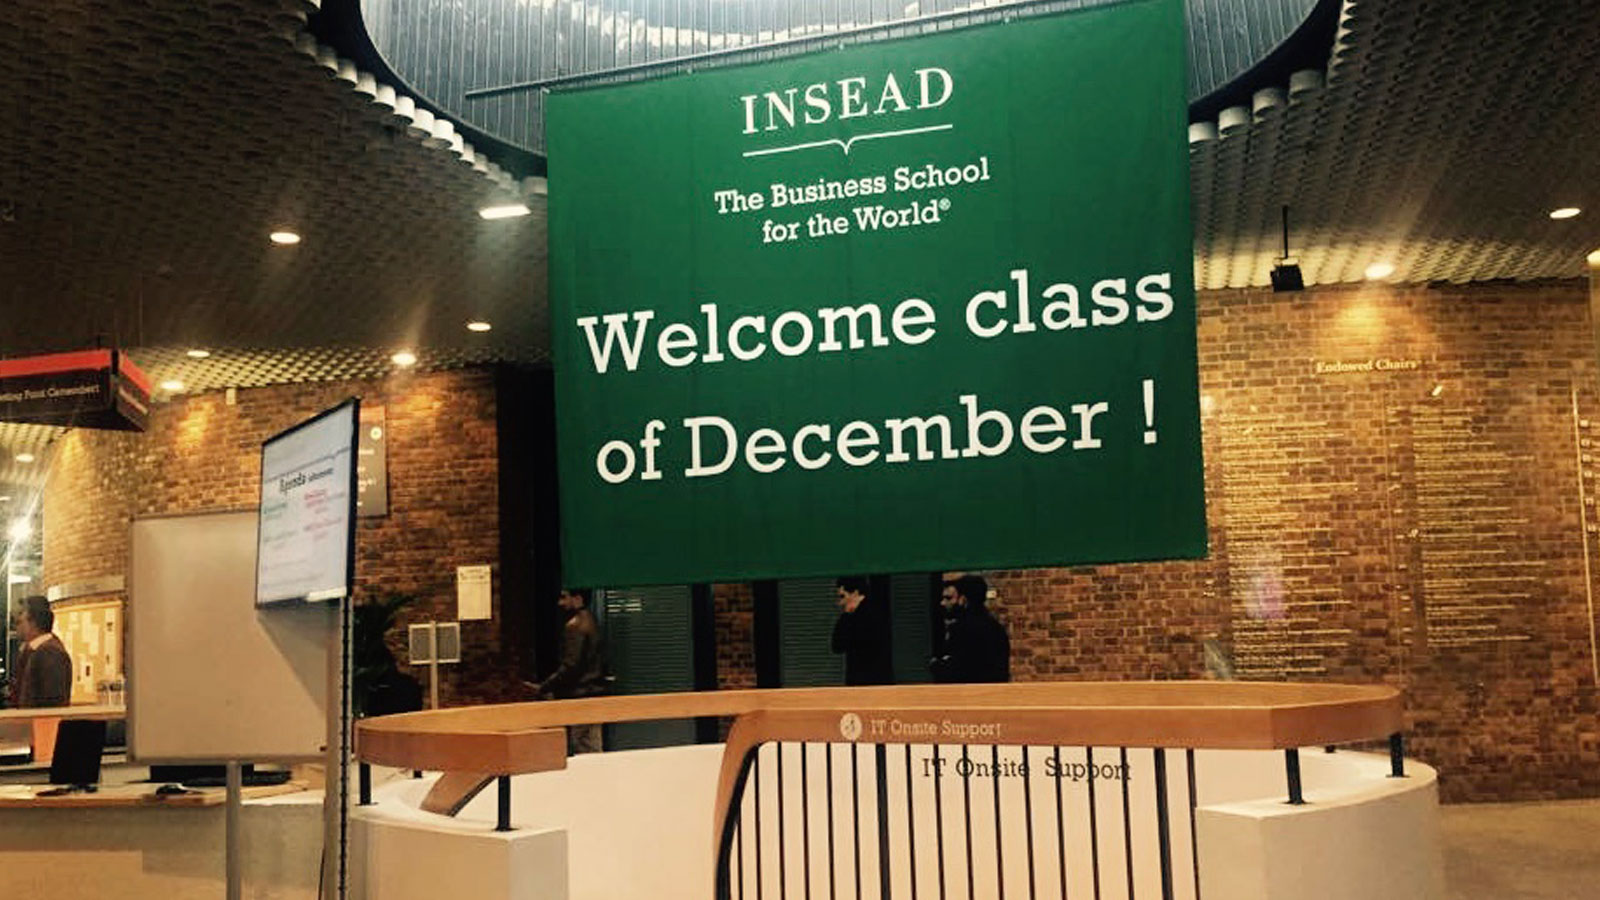 Am I InSEAD? Or a Sense of Belonging